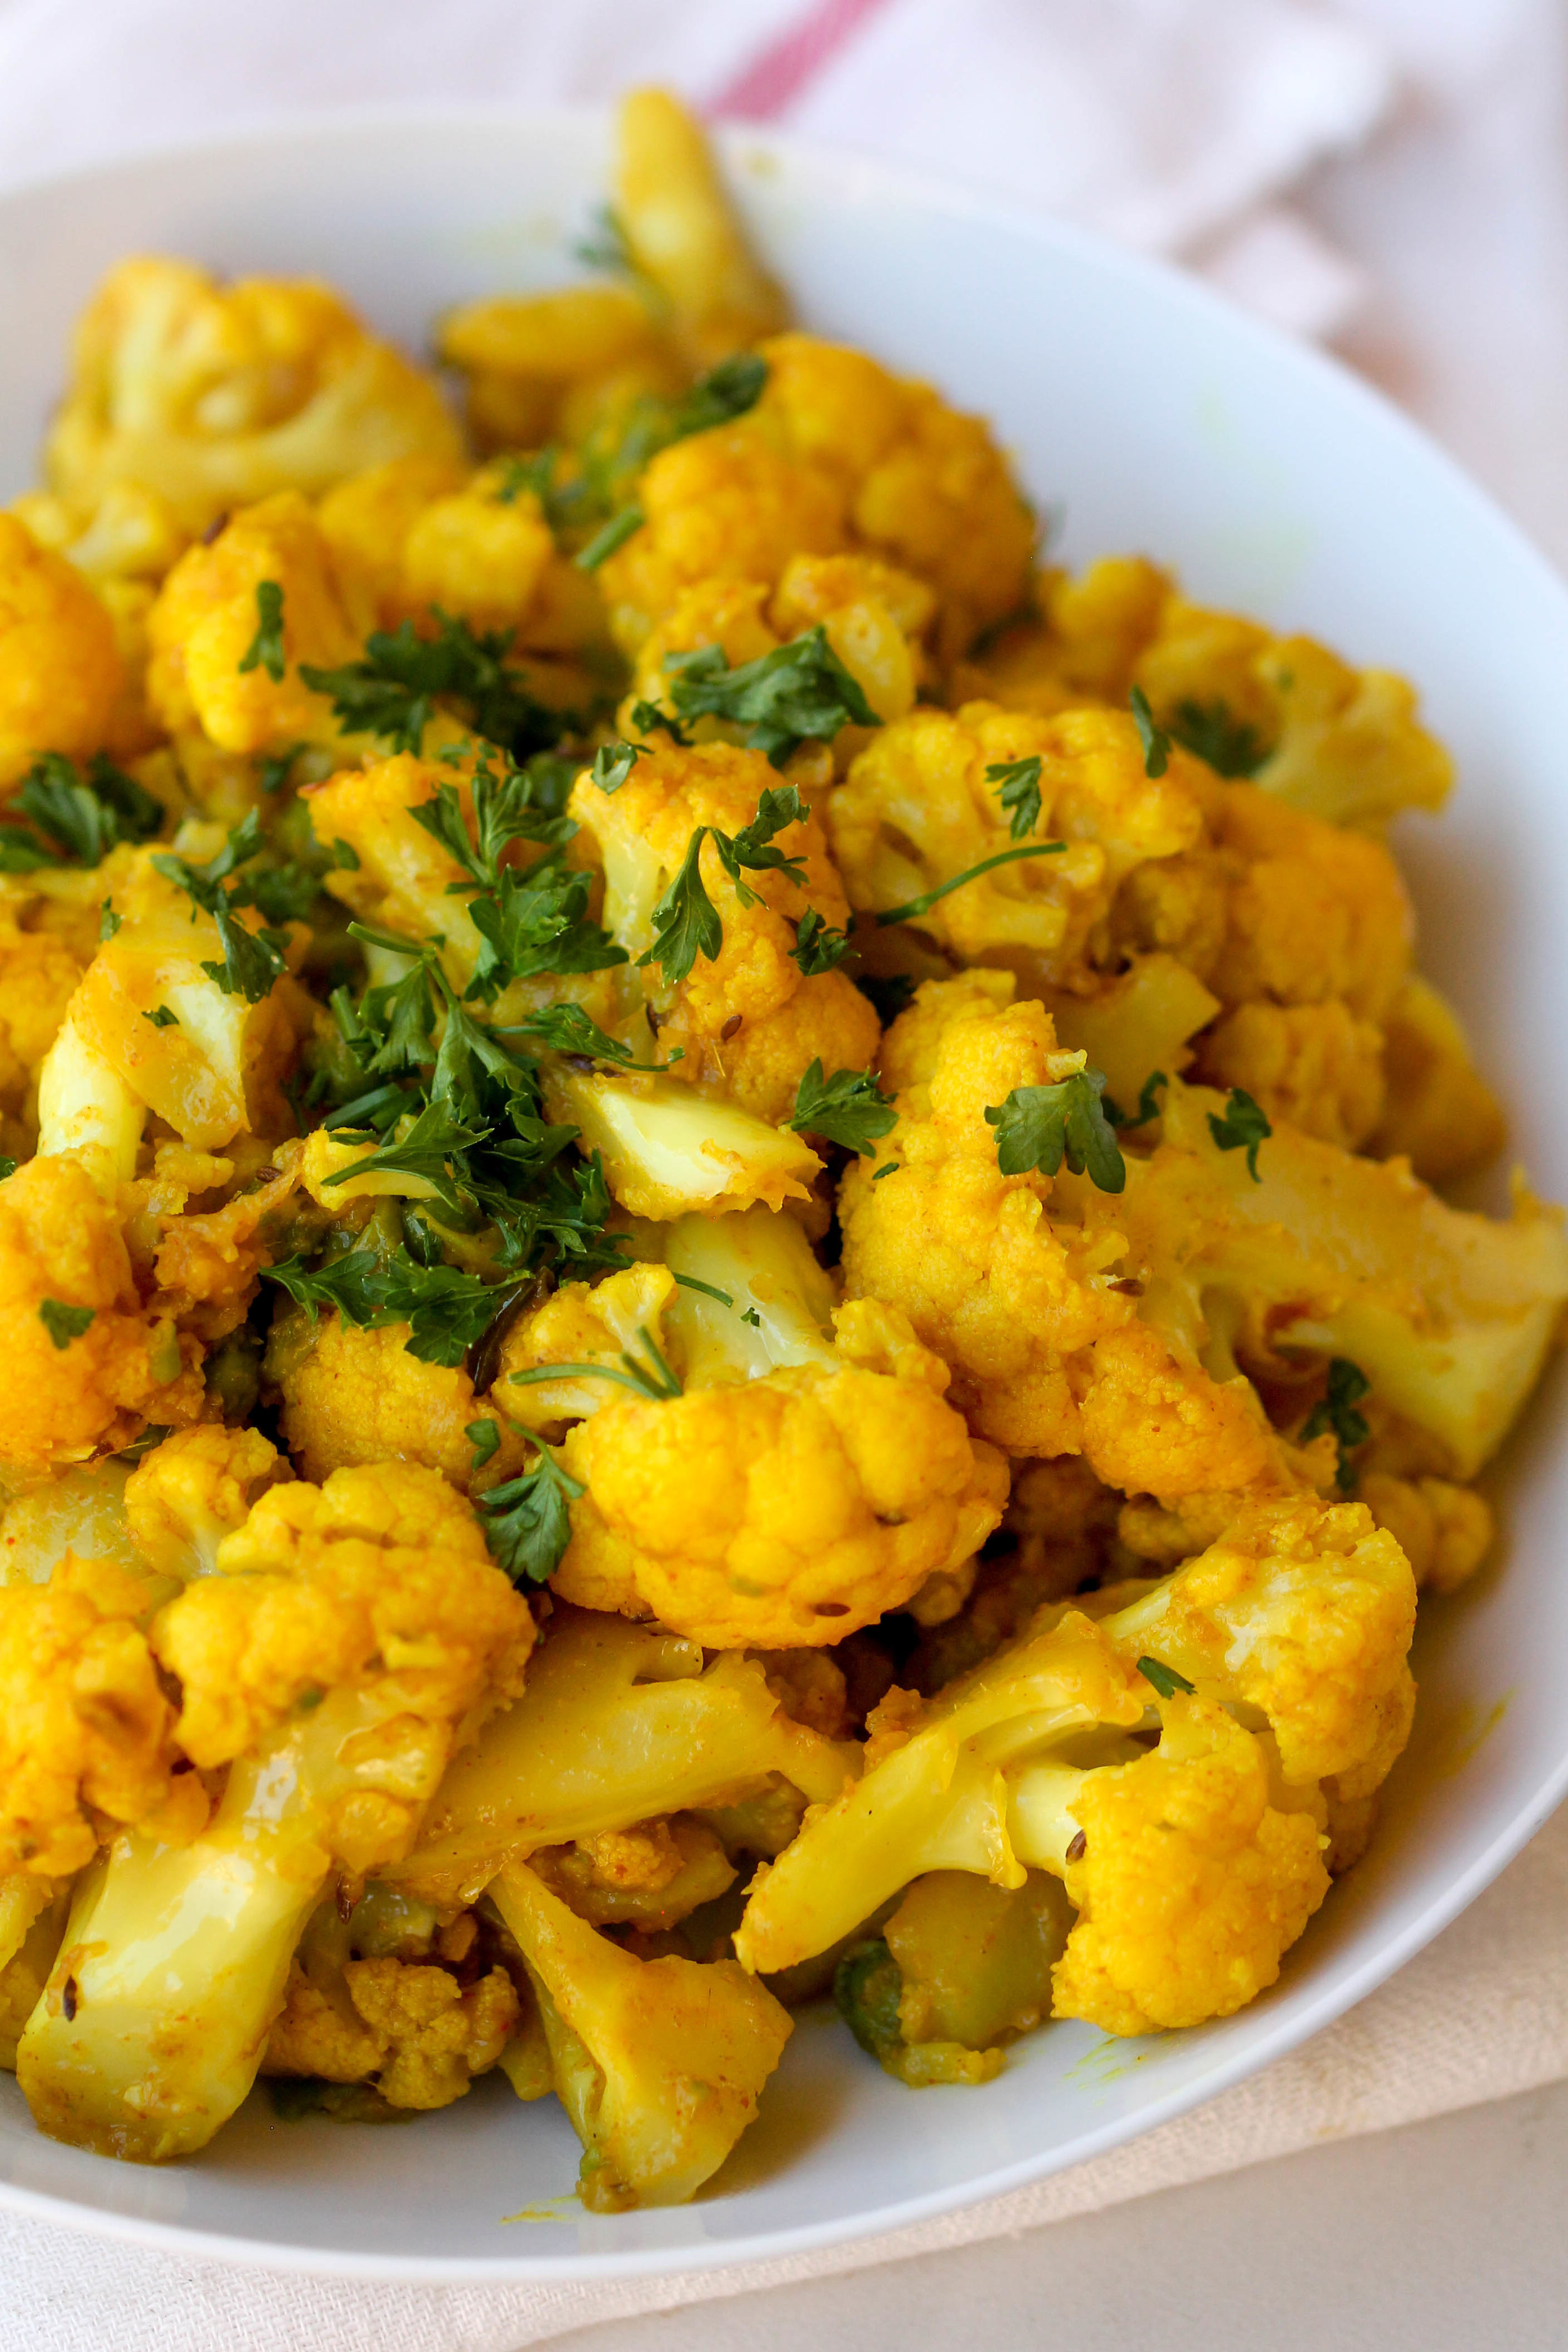 Cauli Aloo is a one pot vegetarian/vegan/gluten-free side dish that can be made under 30 minutes.